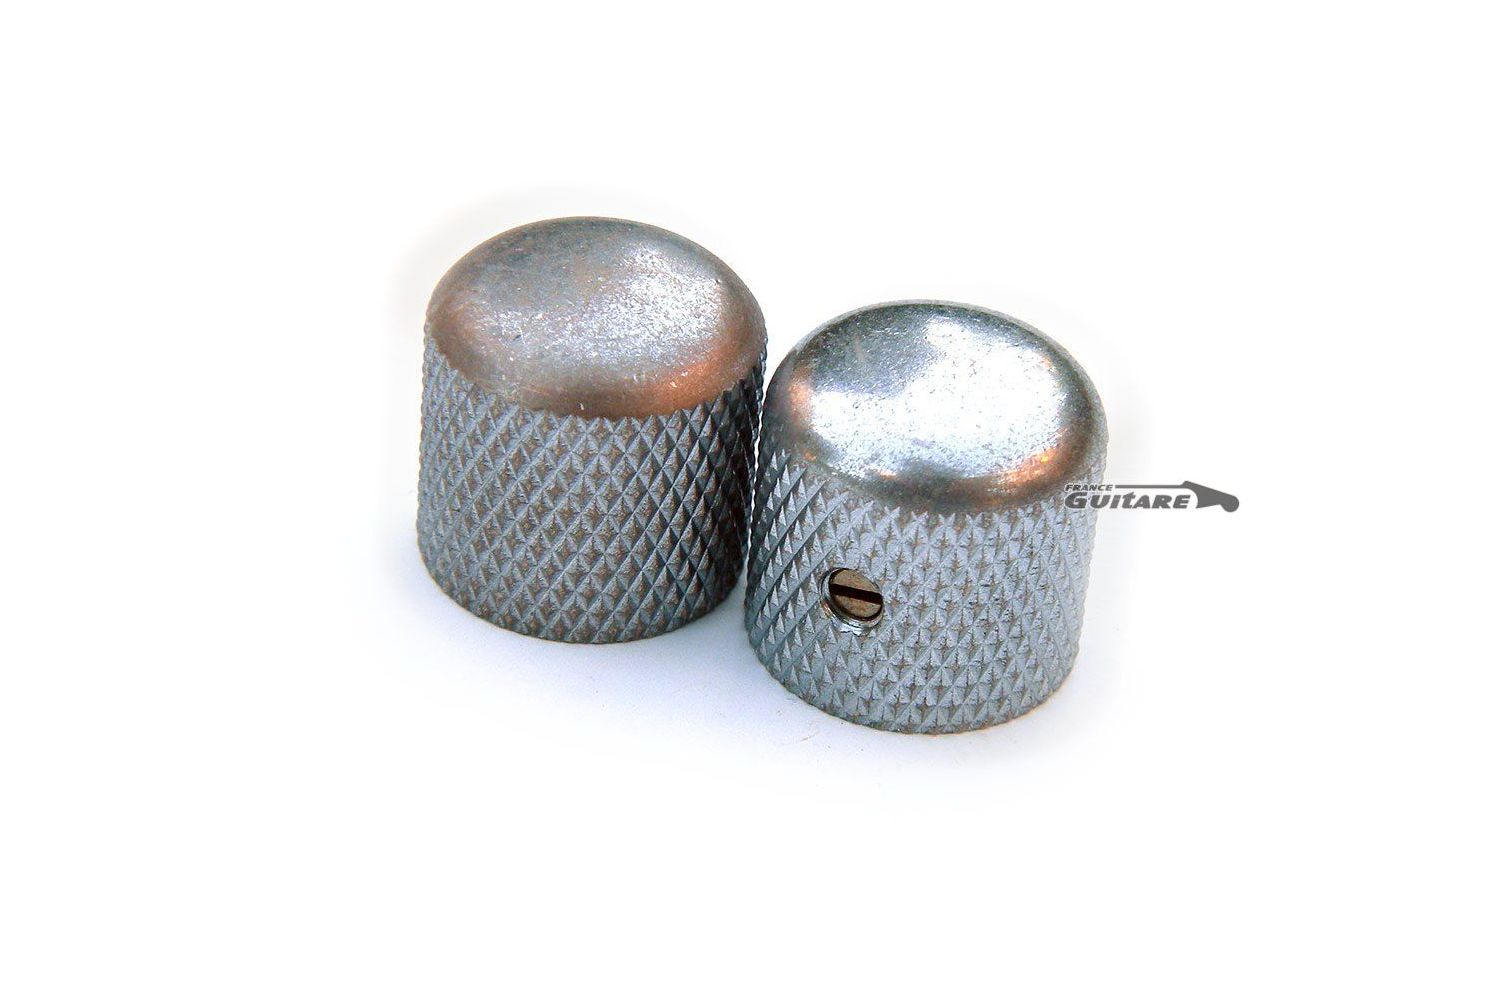 2 Boutons Dome Telecaster Metal Nickel AGED Gros Grains pour pots SplitShaft 6mm